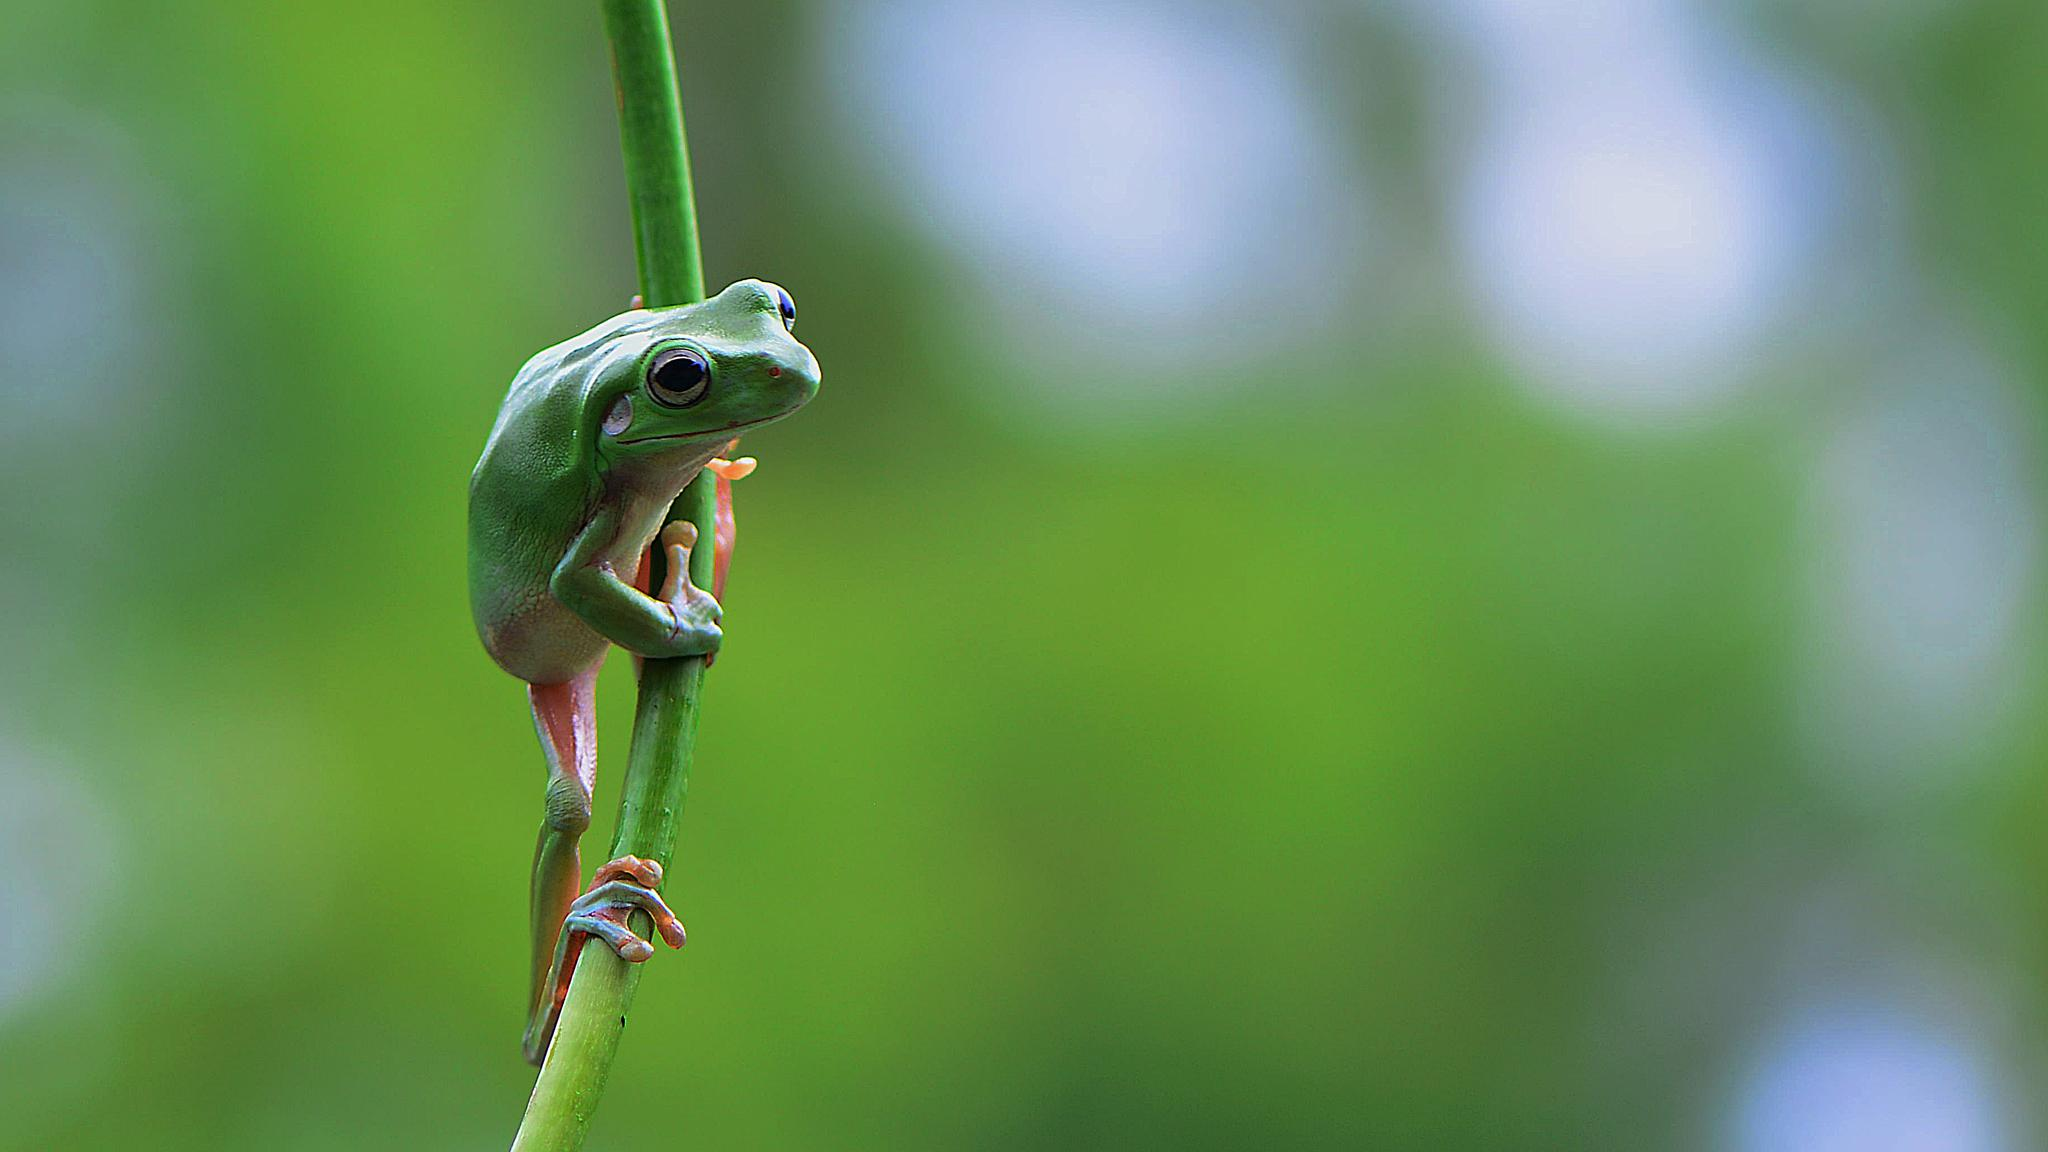 Green Frog by ajarsetiadi